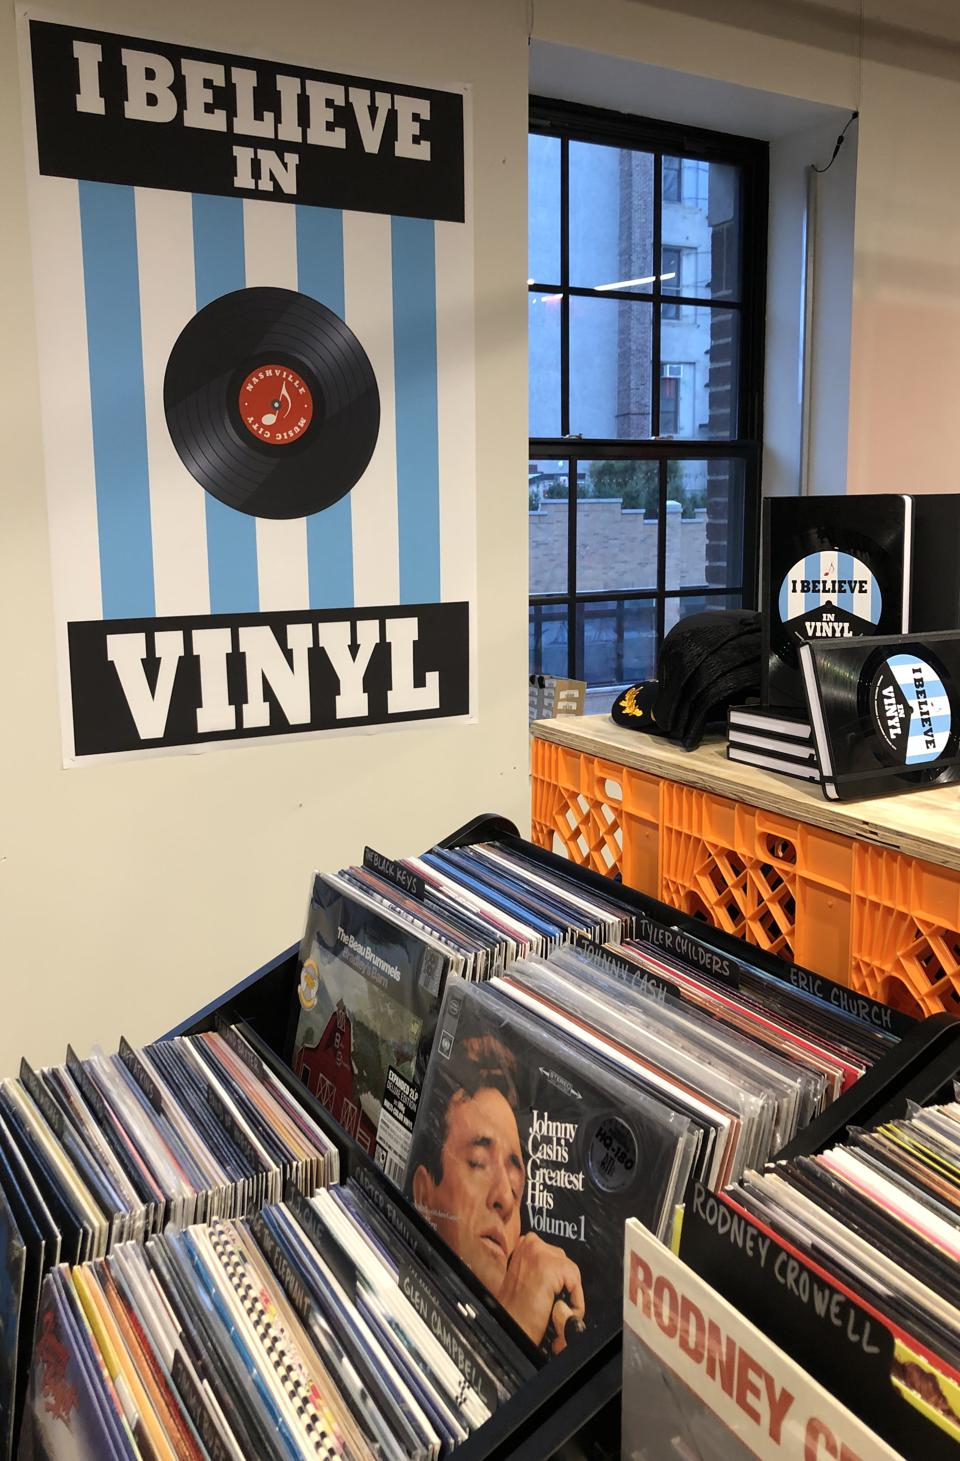 Some of the records reflecting artists with a Nashville connection on display in Pop-up store in New York